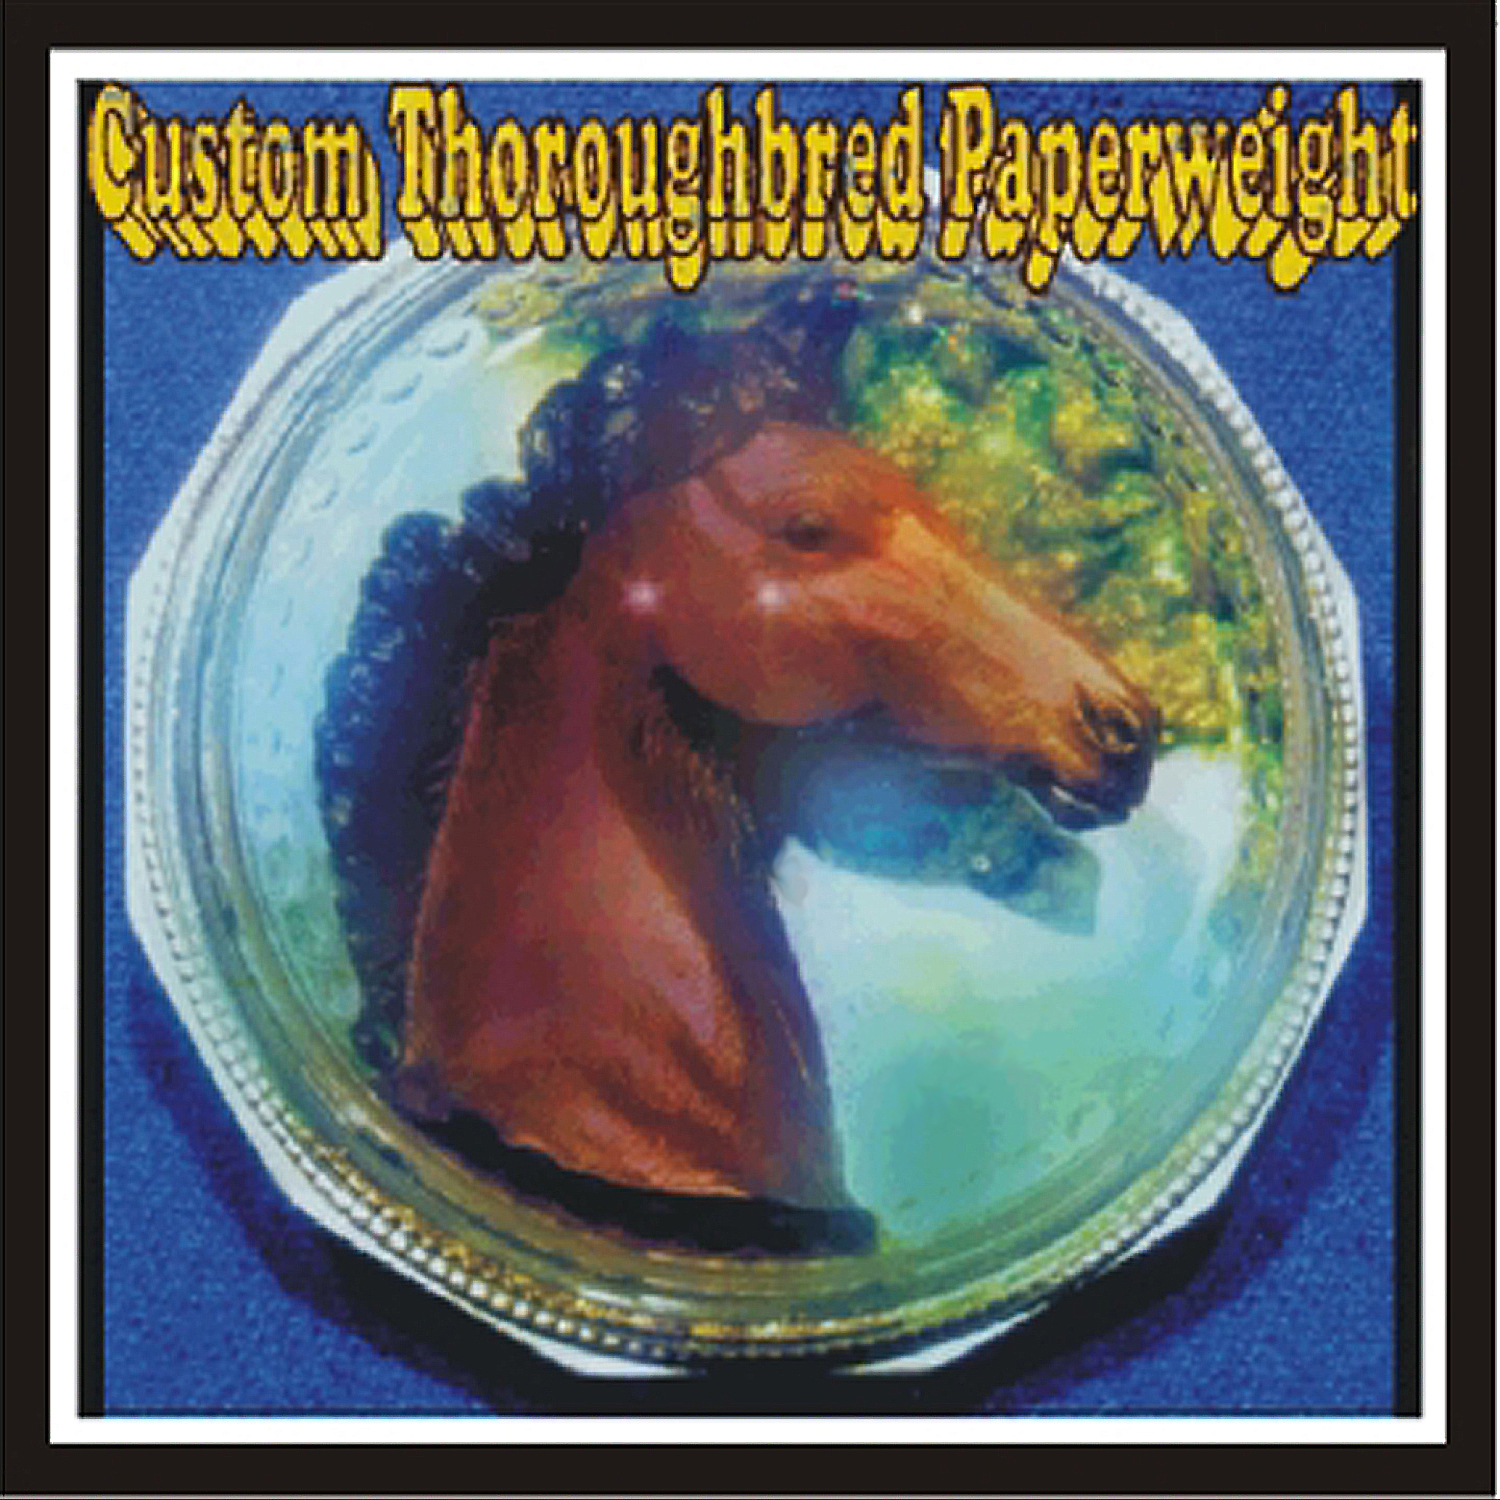 CUSTOM PAINTED THOROUGHBRED OR QUARTER-HORSE PAPERWEIGHTS